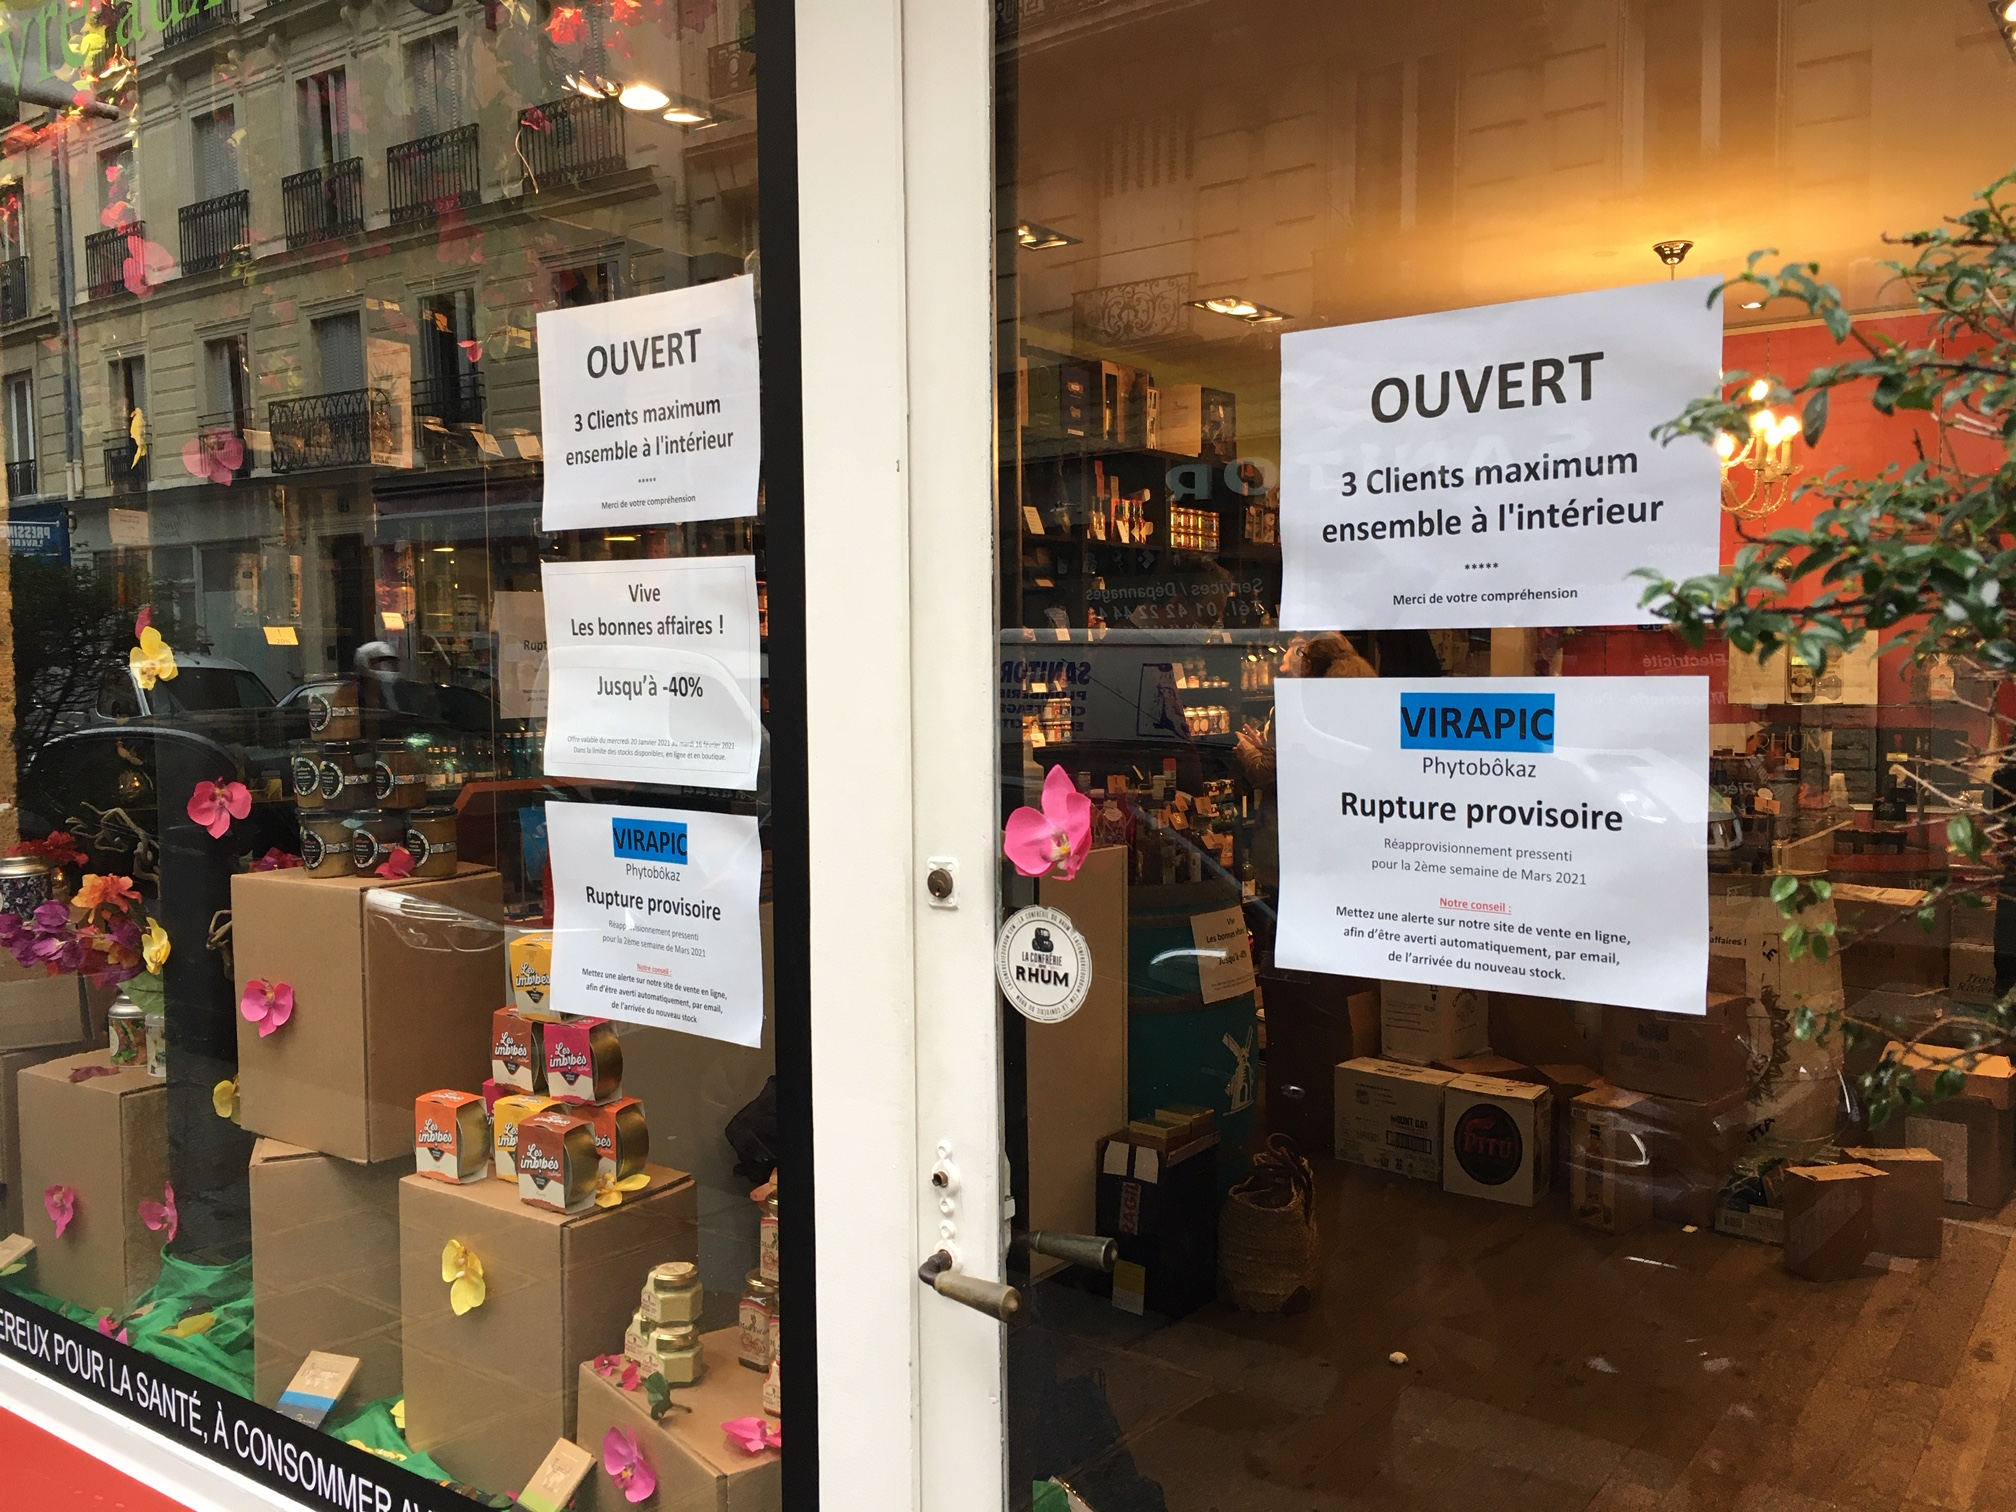 Paris : ruée sur le Virapic